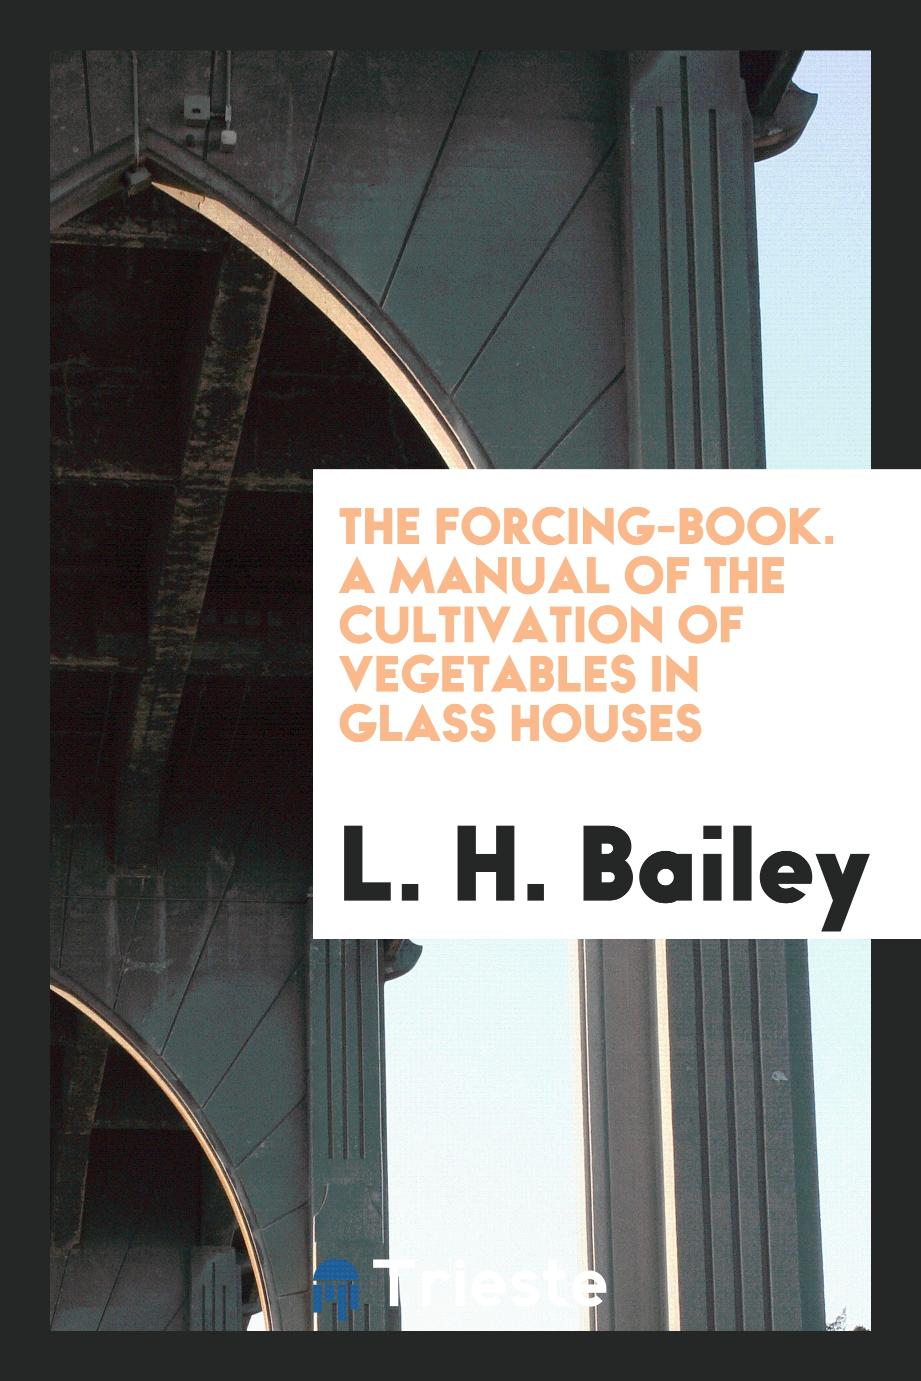 The Forcing-Book. A Manual of the Cultivation of Vegetables in Glass Houses